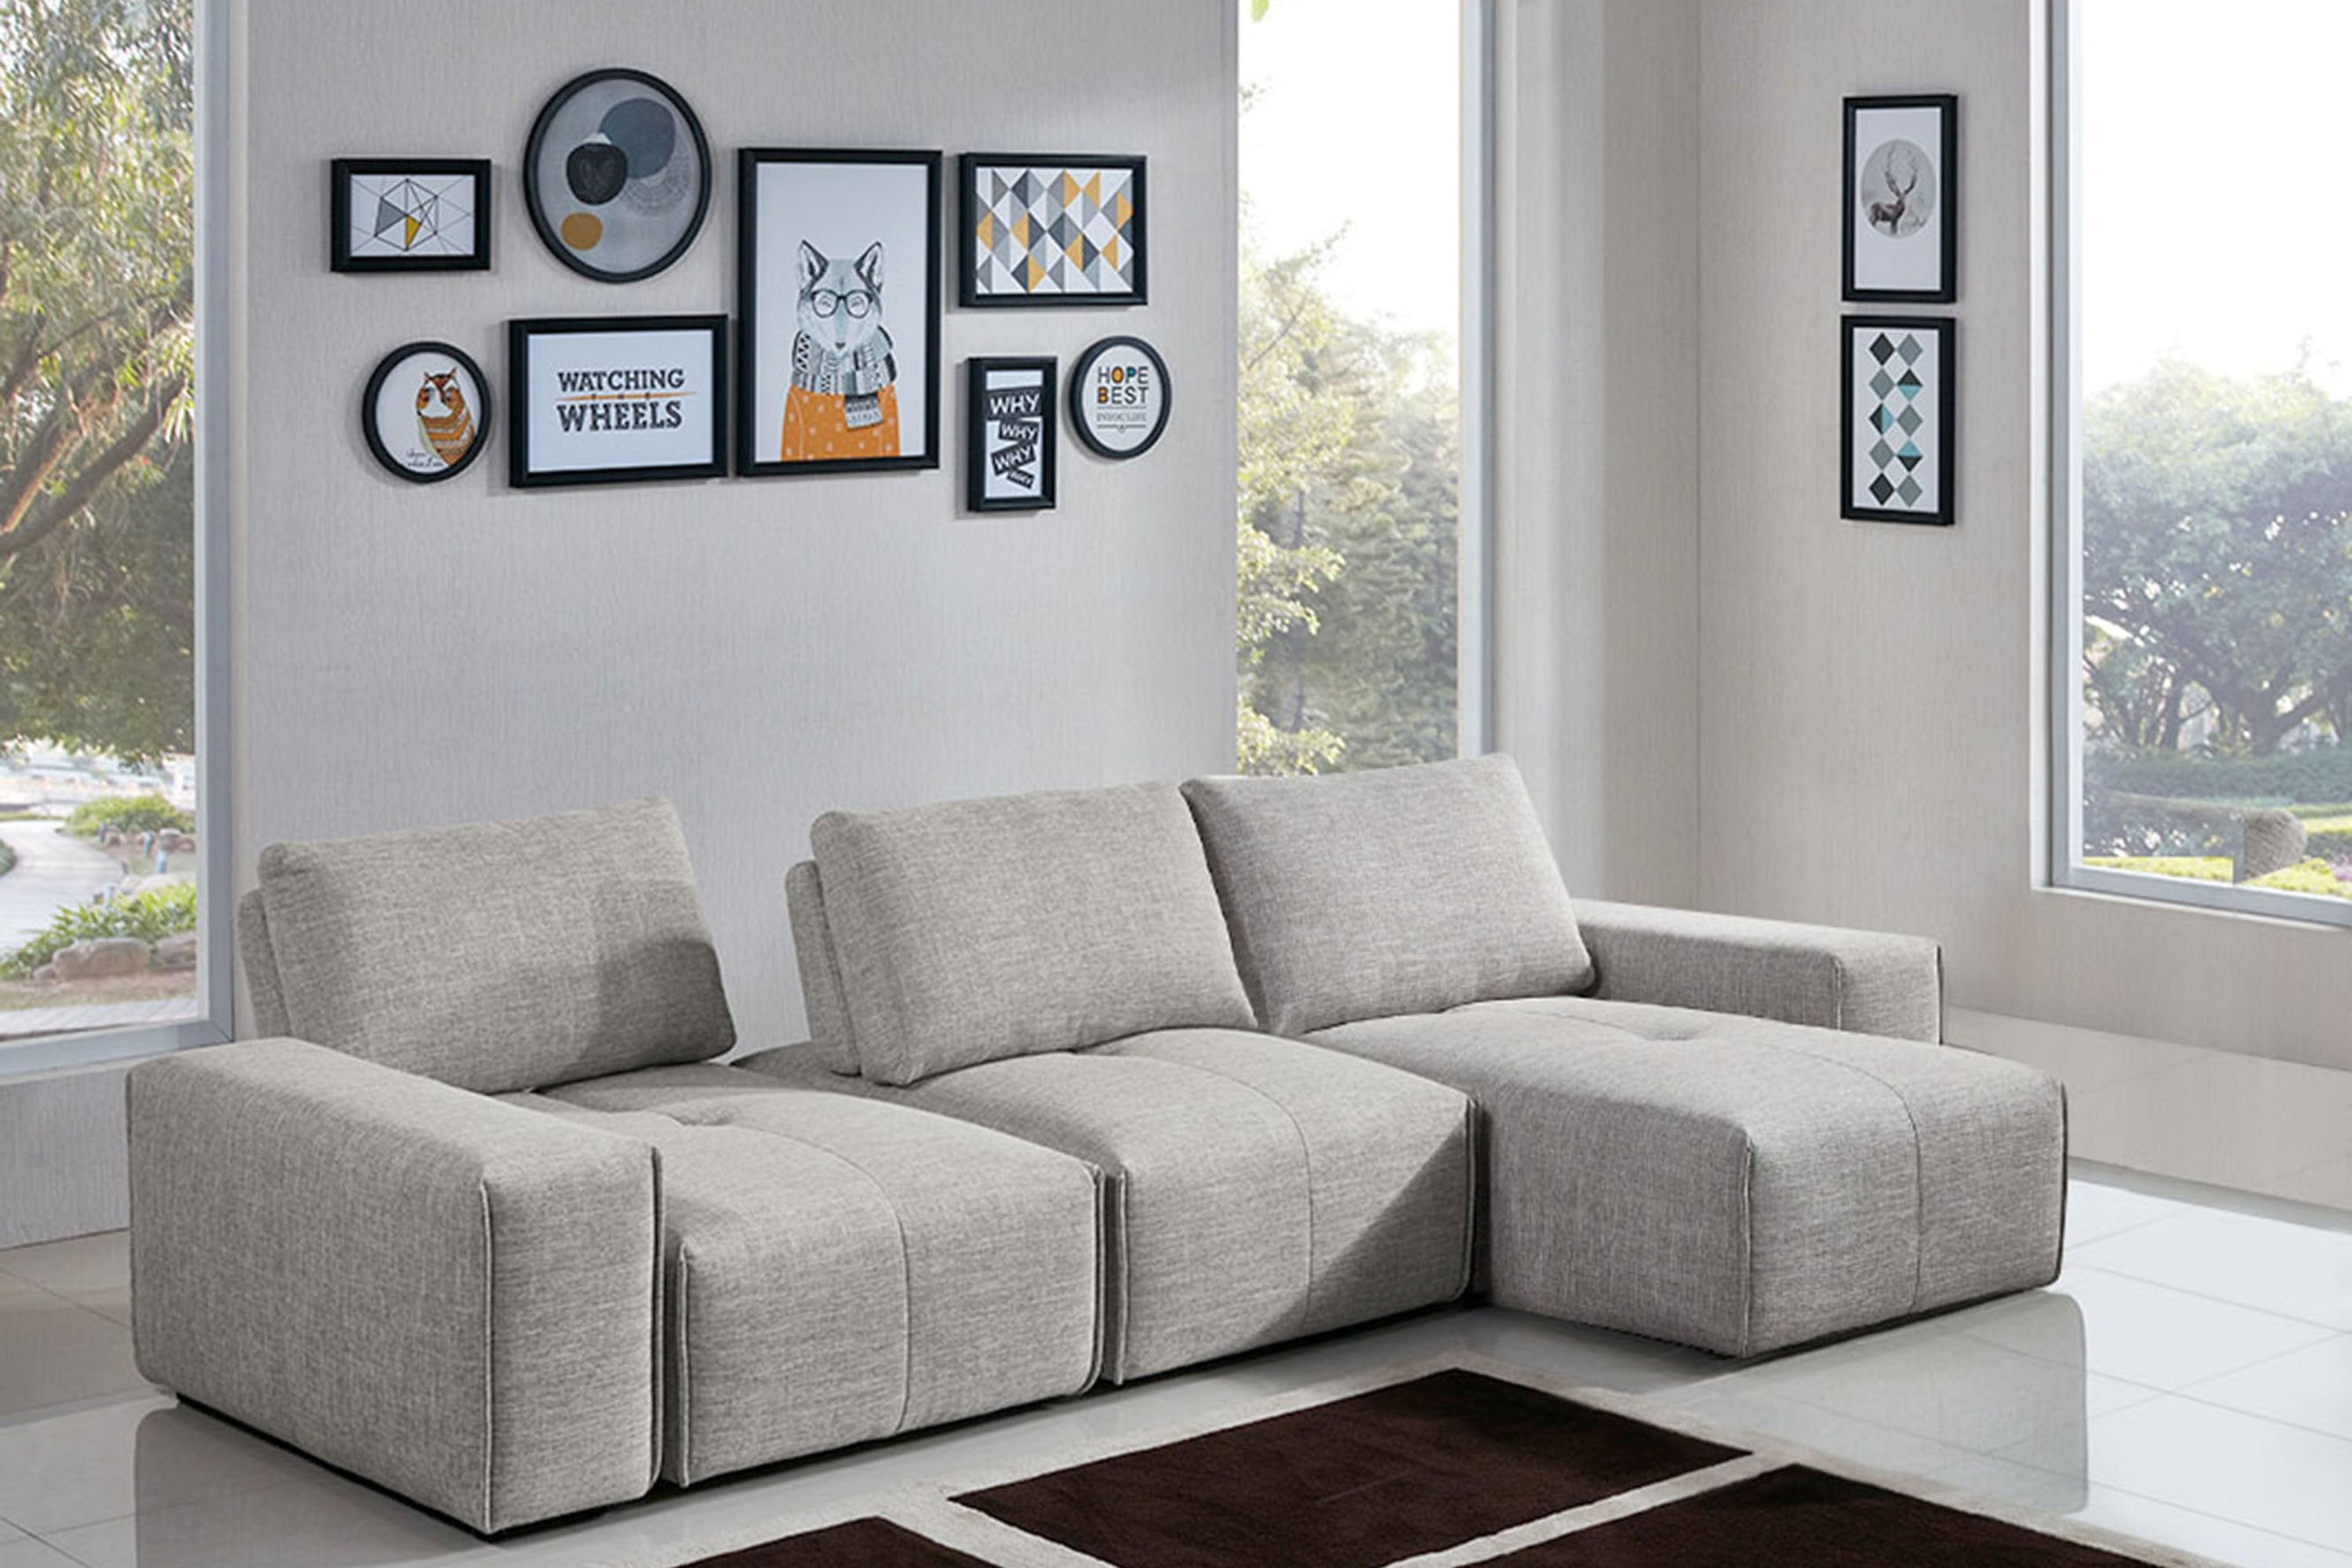 Jazz Modular 3-Seater Chaise Sectional